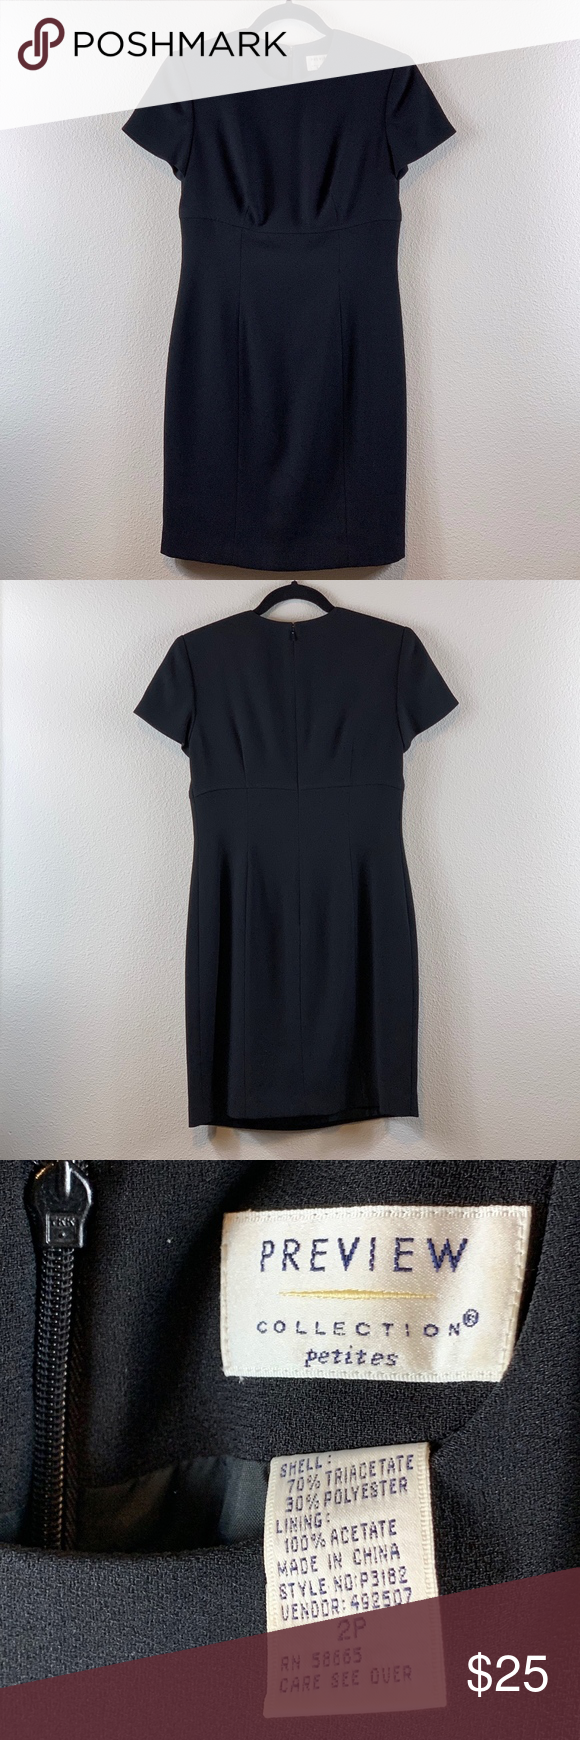 PREVIEW Little Black Dress  Preview Collection Dress